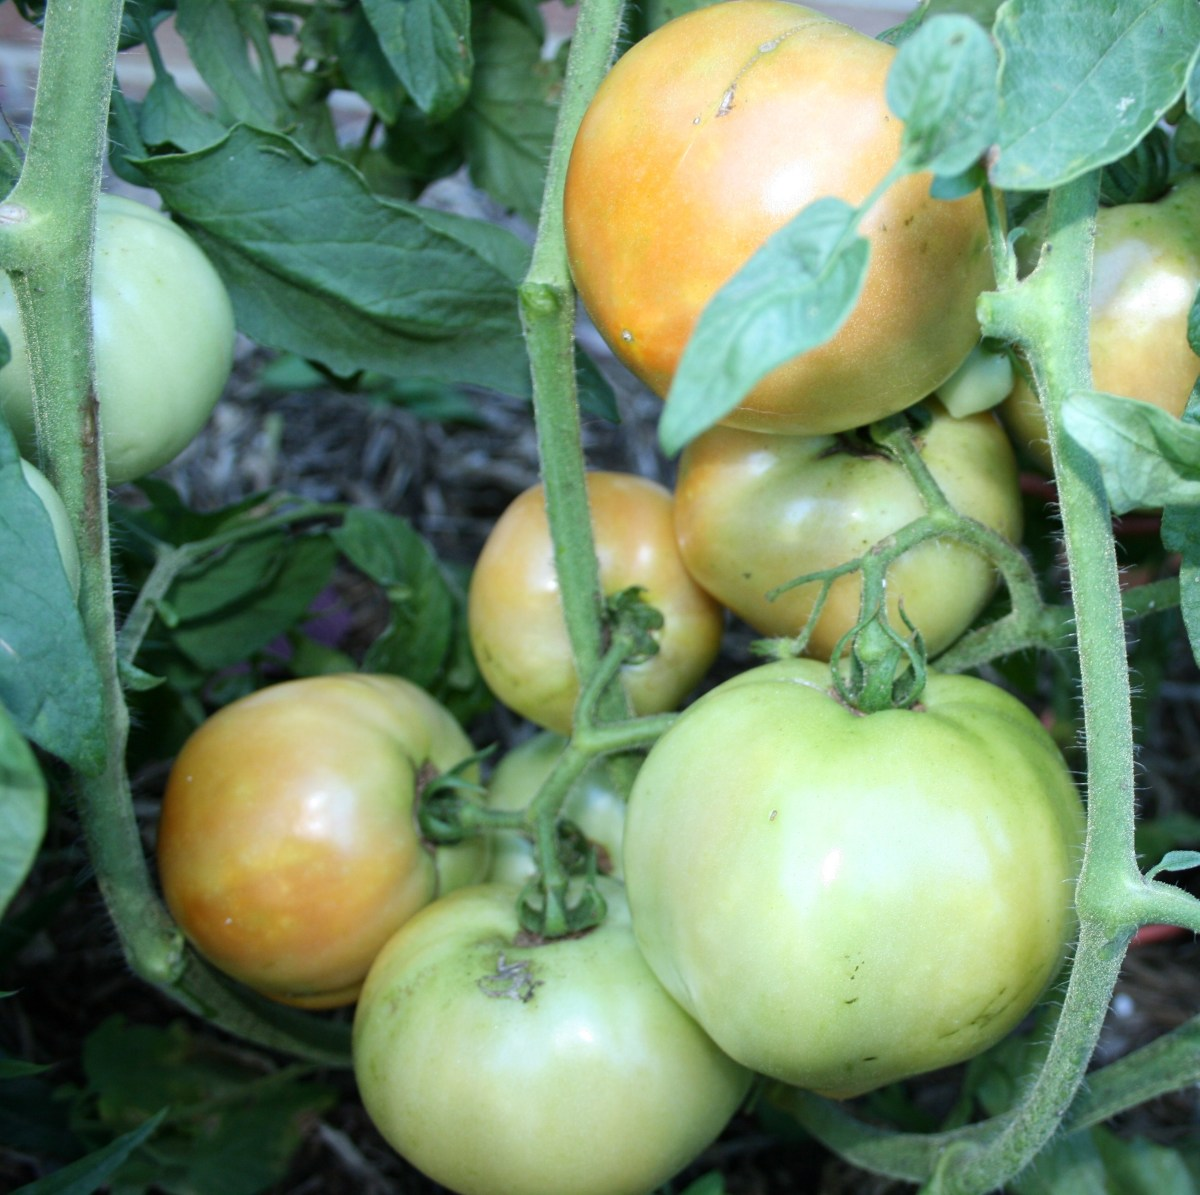 Mulching, Staking & Pinching Your Way to Better Tomato Plants